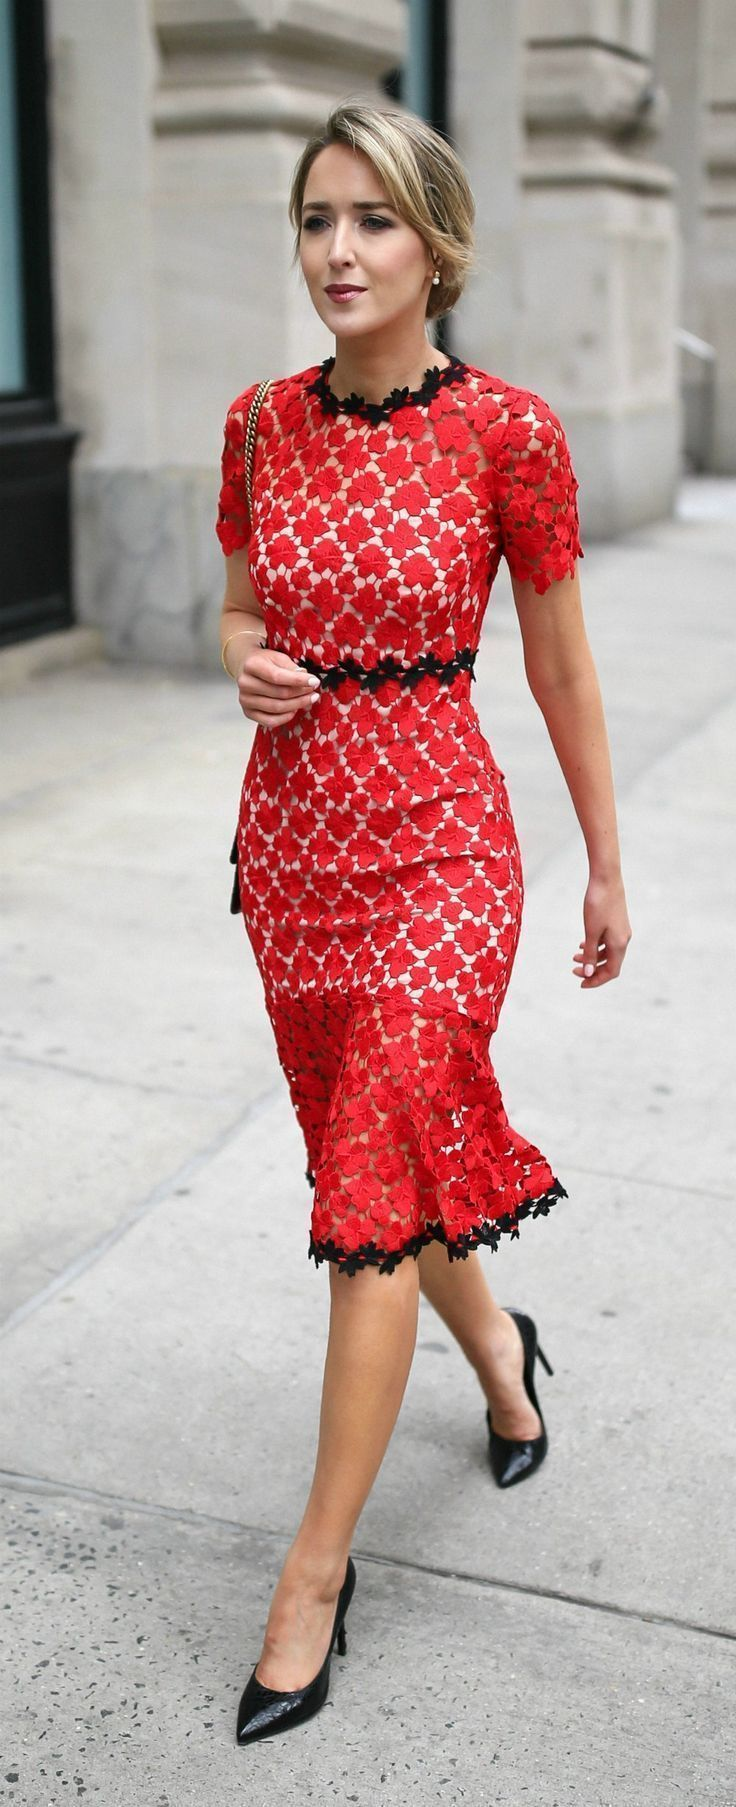 What To Wear To A Wedding Cocktail Attire Wedding Guest Red Lace Fit And Flare Sheath Trumpet Dr Classy Dress Red Lace Midi Dress Midi Short Sleeve Dress [ 1807 x 736 Pixel ]